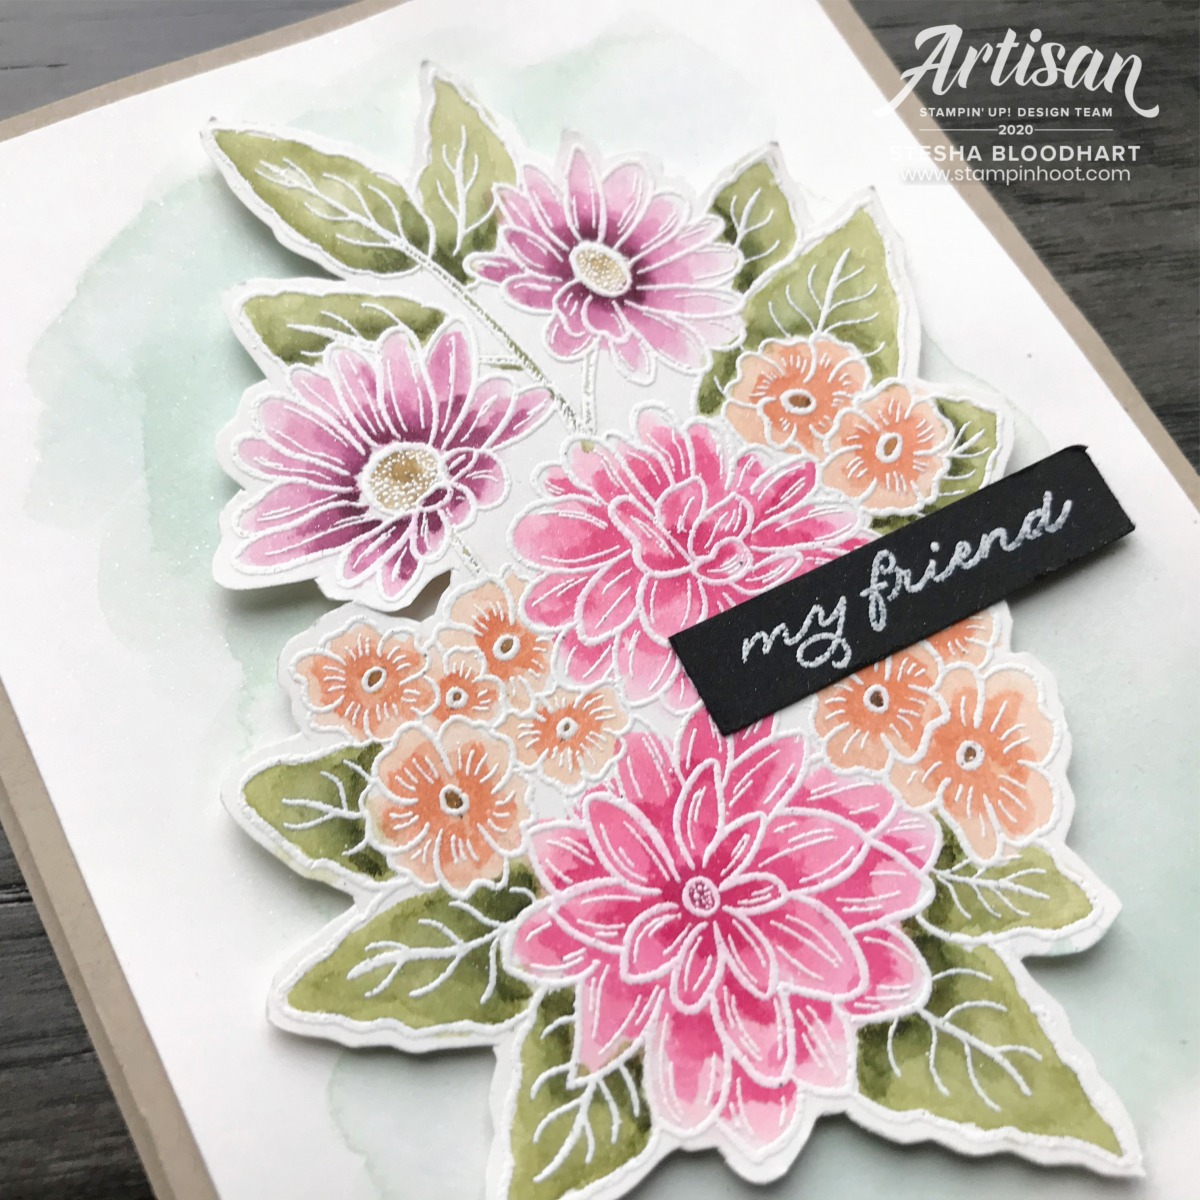 Ornate Garden Mega Suite Bundle by Stampin' Up! Card by Stesha Bloodhart, Stampin' Hoot! 2020 Artisan Design Team Blog Hop